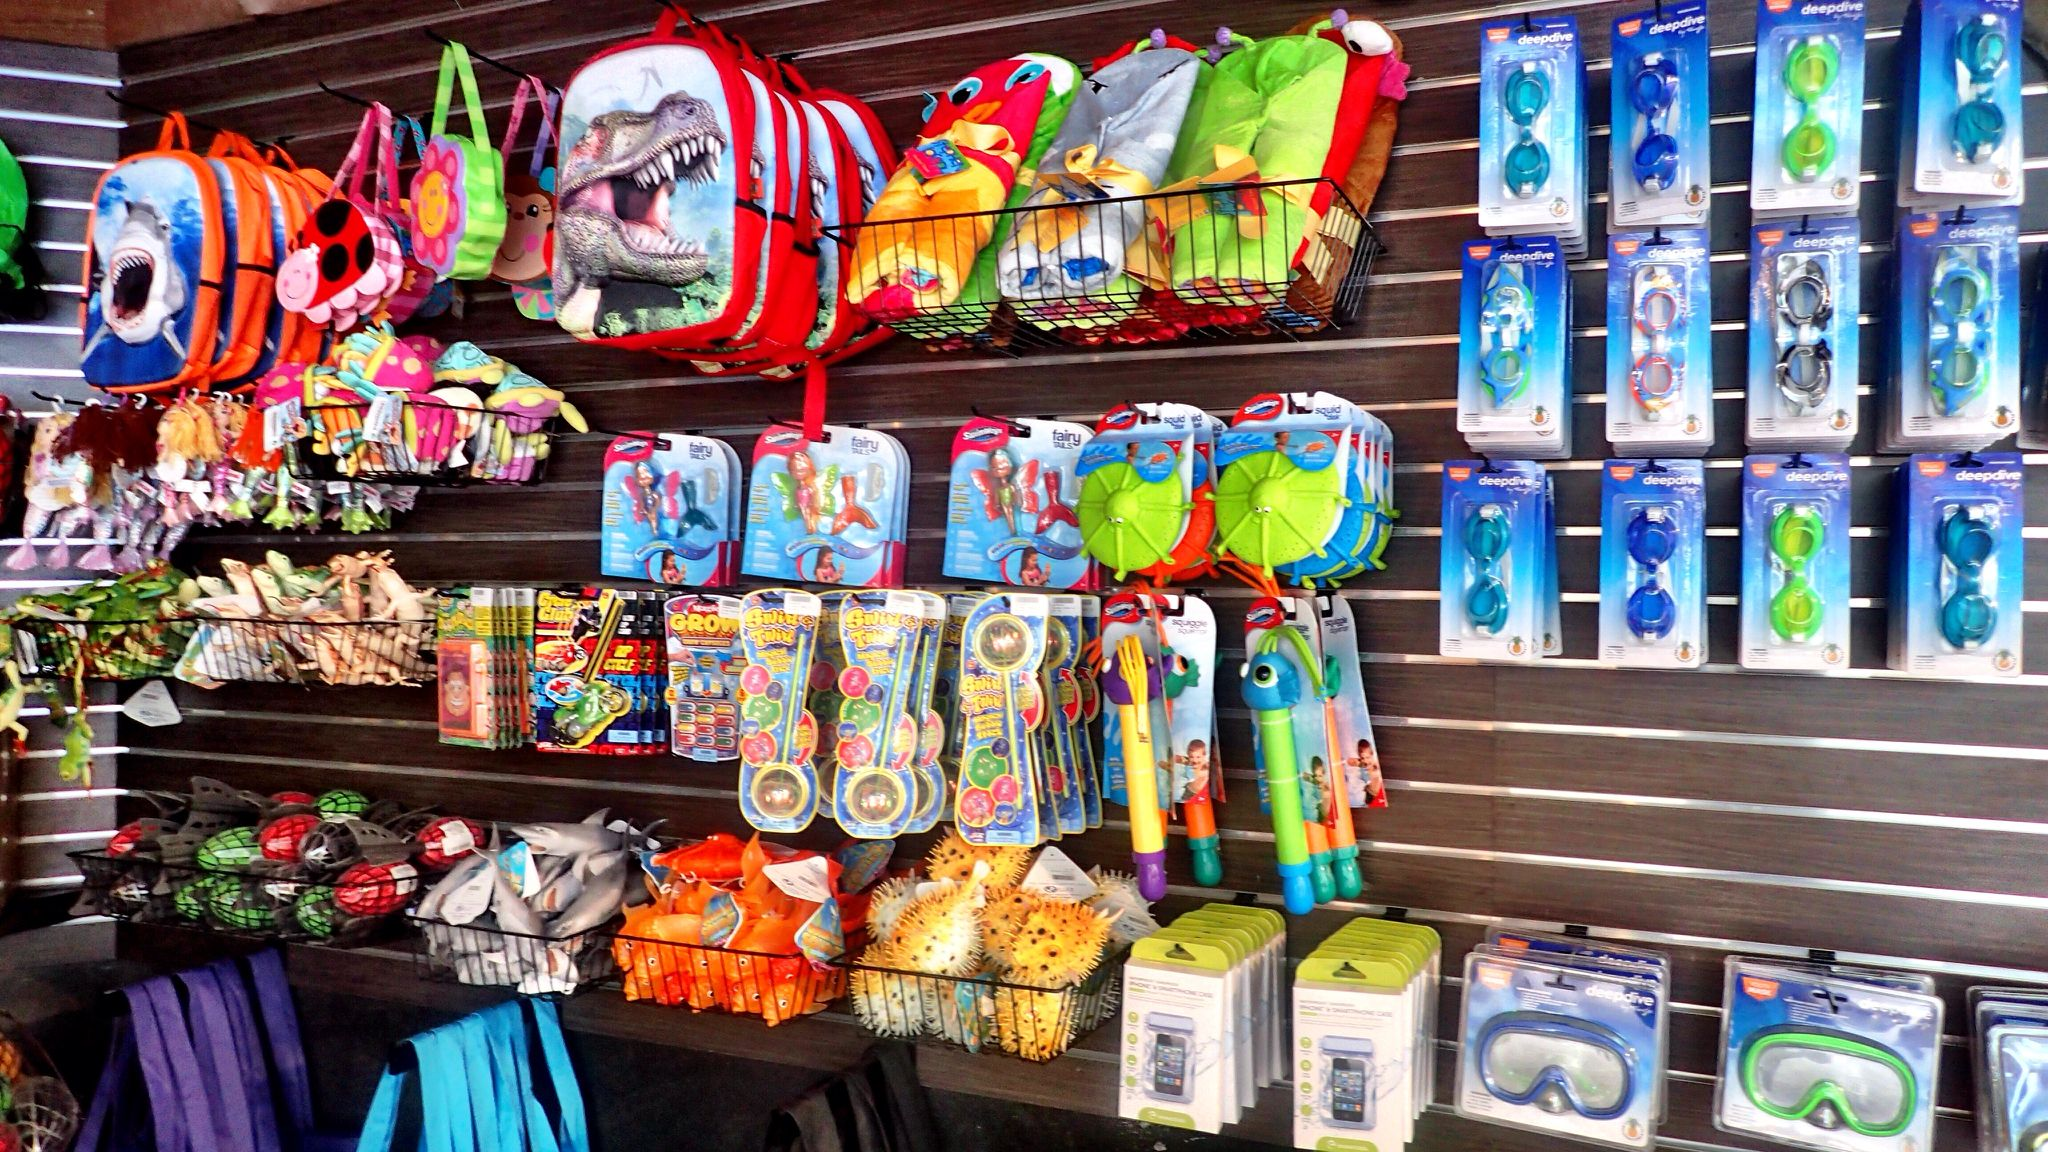 Forget your goggles? We've you covered at Relic Retail! Stop in for all your waterpark essentials! #CamelbackLodge